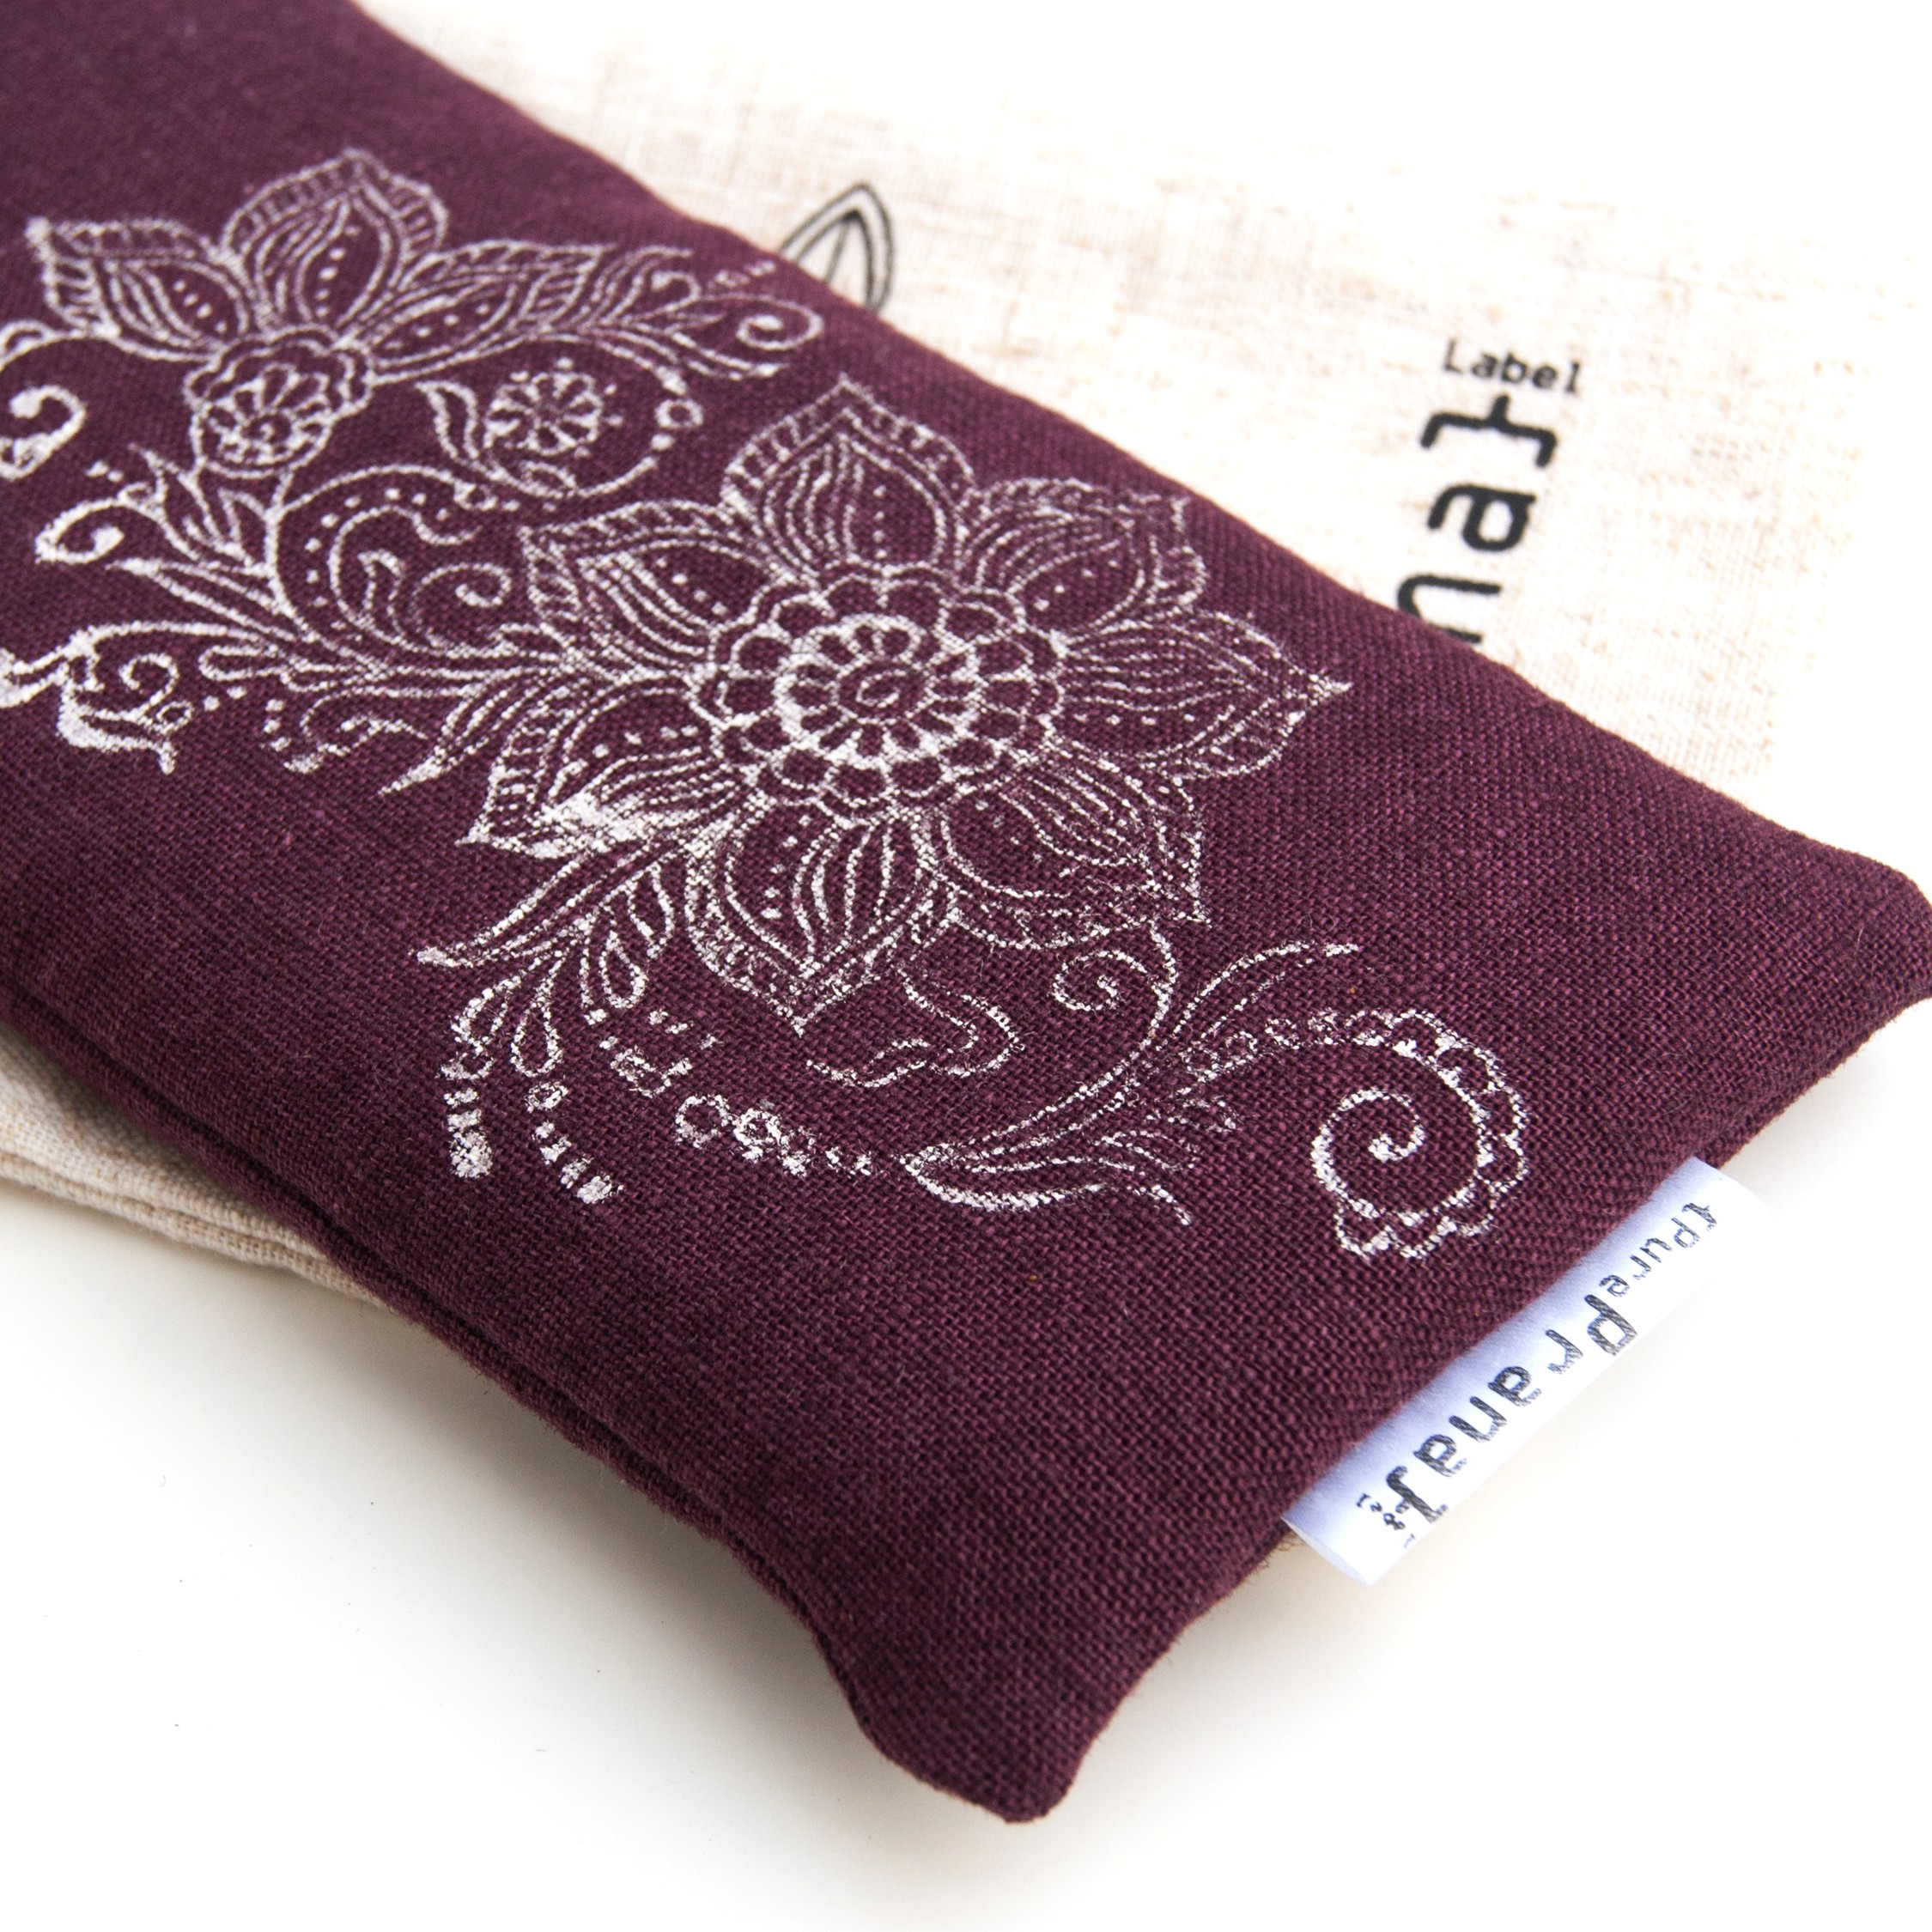 Handprinted Mehndi design on your non toxic lavender eye pillow